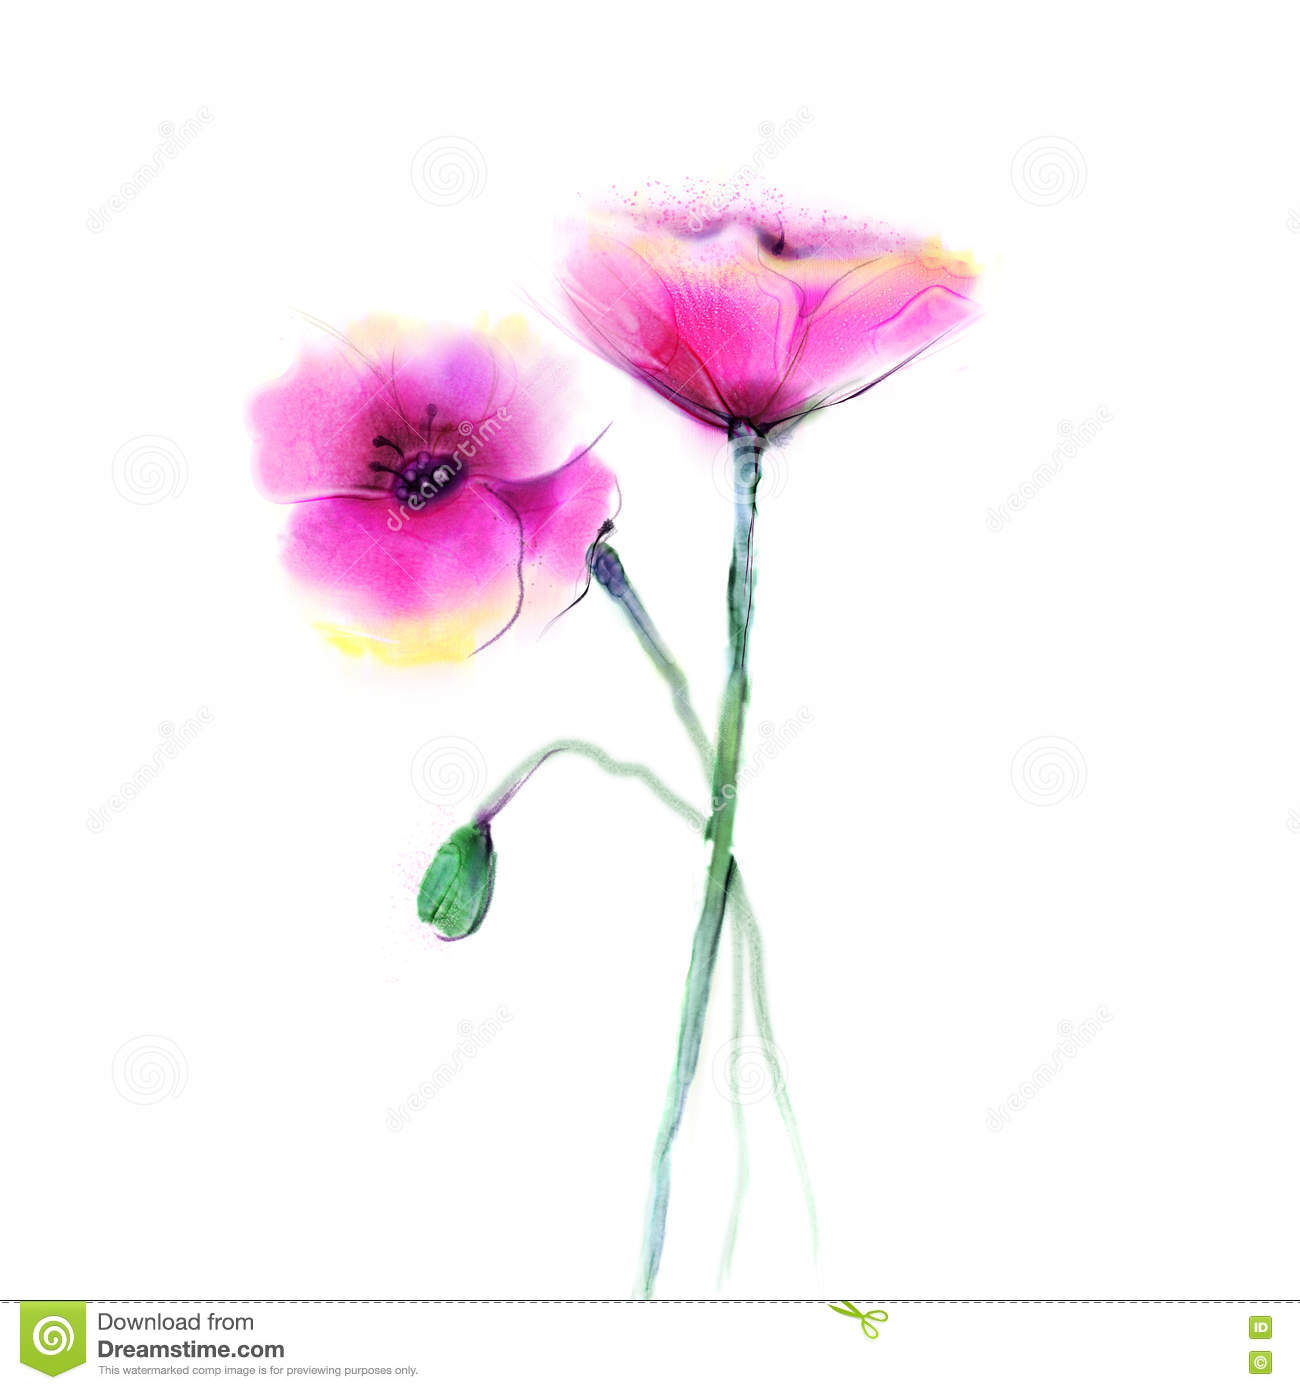 Watercolor Painting Poppy Flower Isolated Flowers On